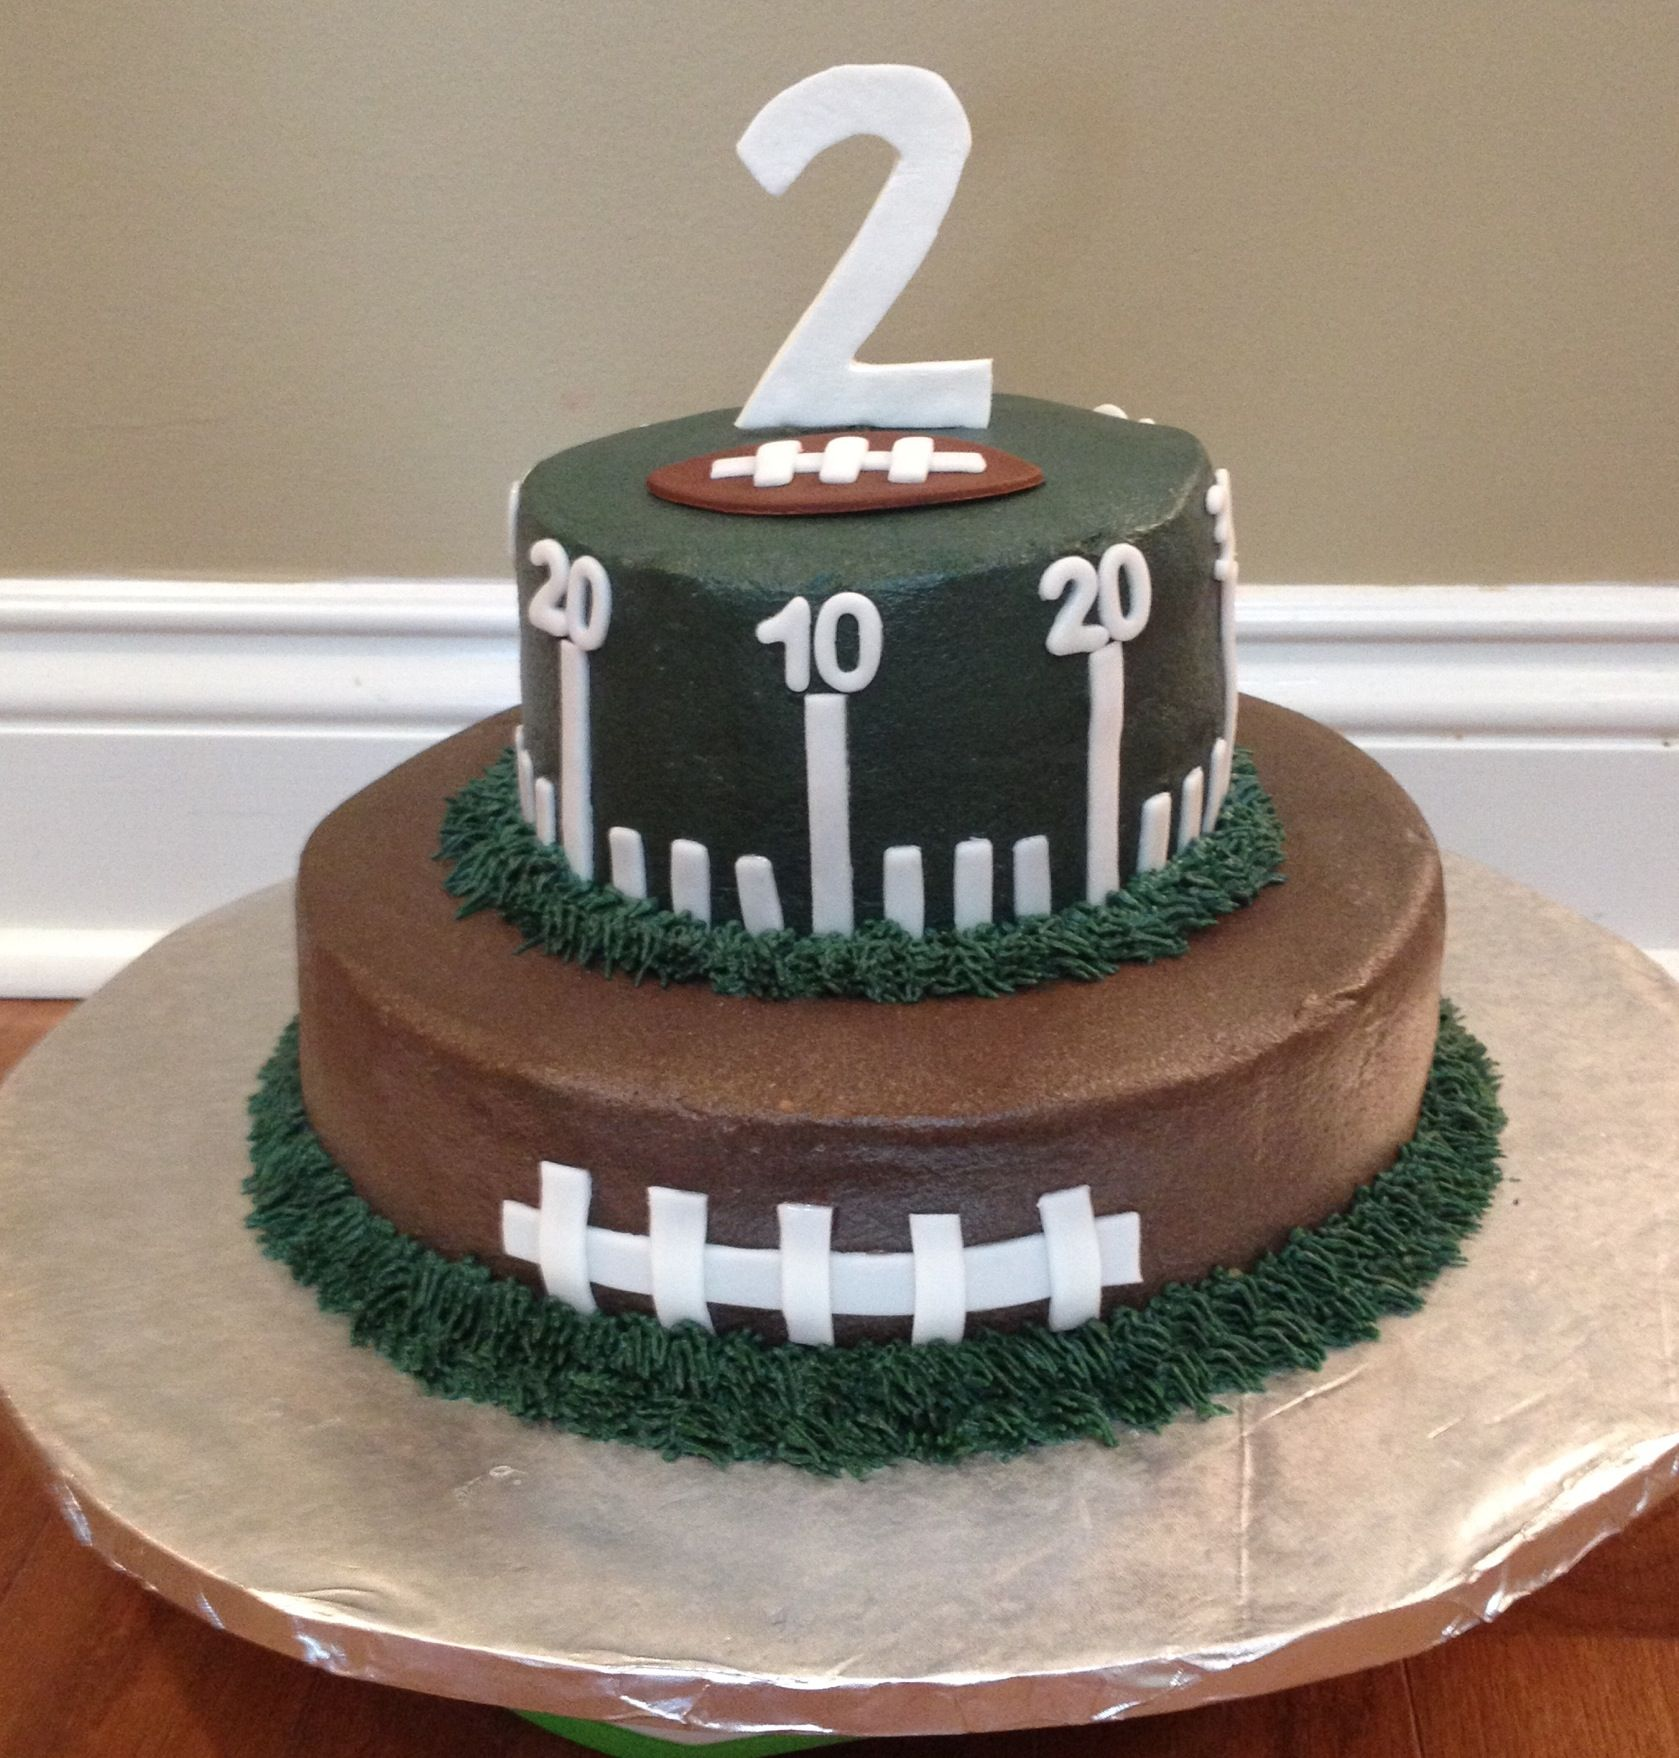 Football Birthday Cake - I HAVE TO MAKE THIS!